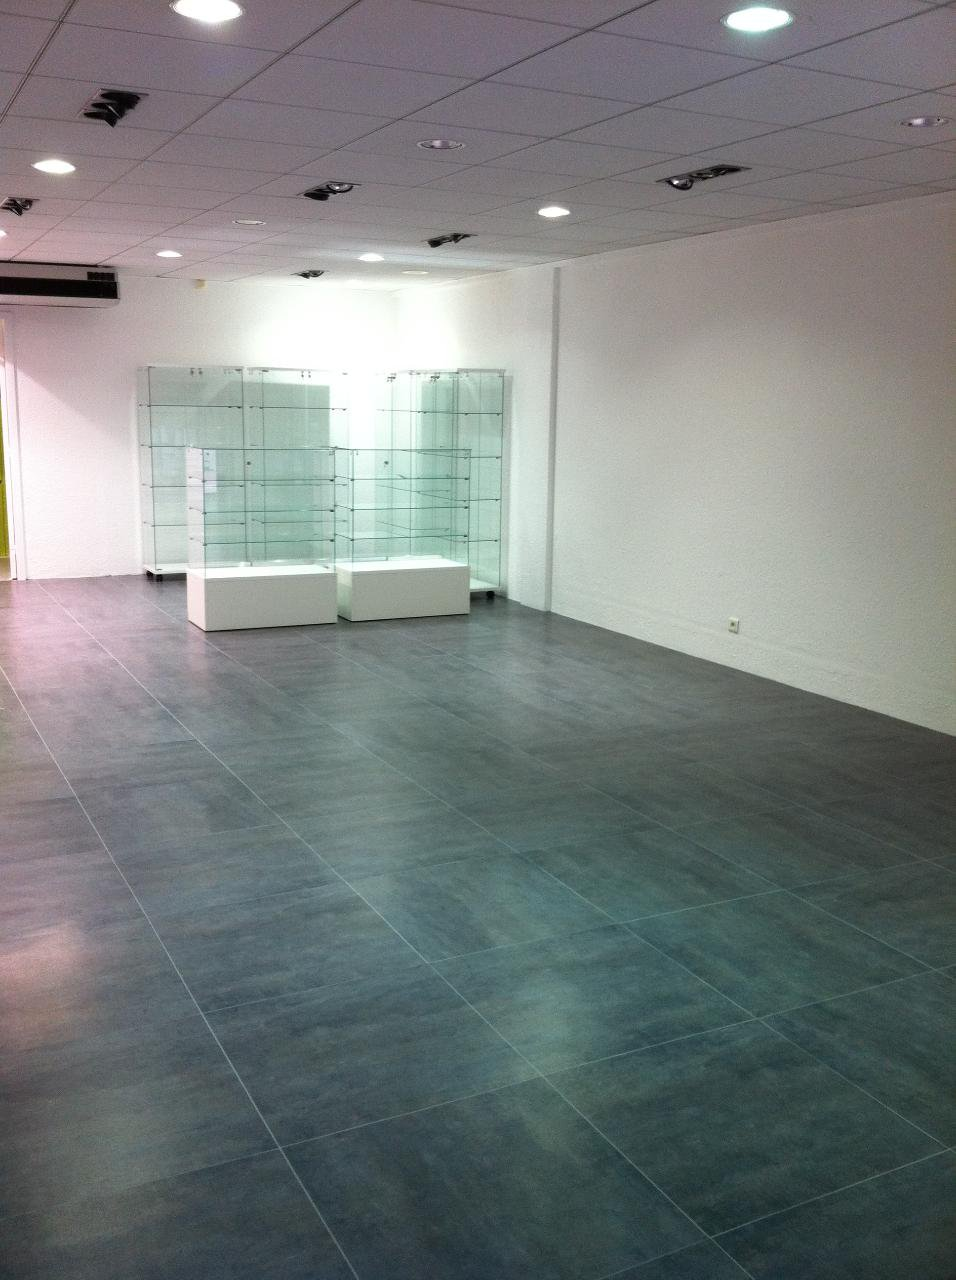 LOCAL PROFESSIONNEL ou COMMERCIAL 70 m²